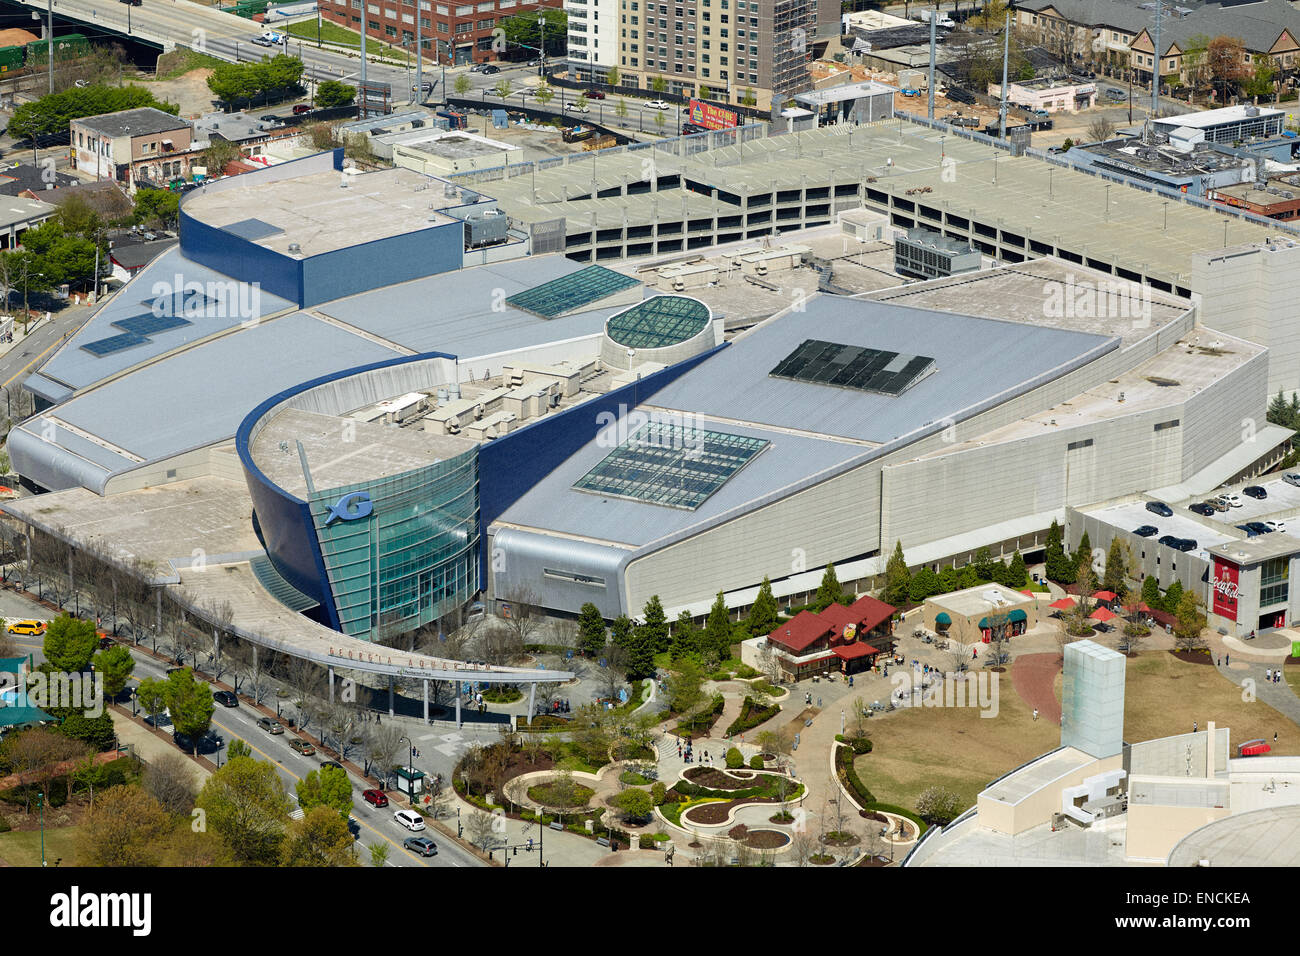 `Downtown Atlanta in Georga USA The Georgia Aquarium is a public aquarium formed by the Coka Cola HQ headquarters - Stock Image